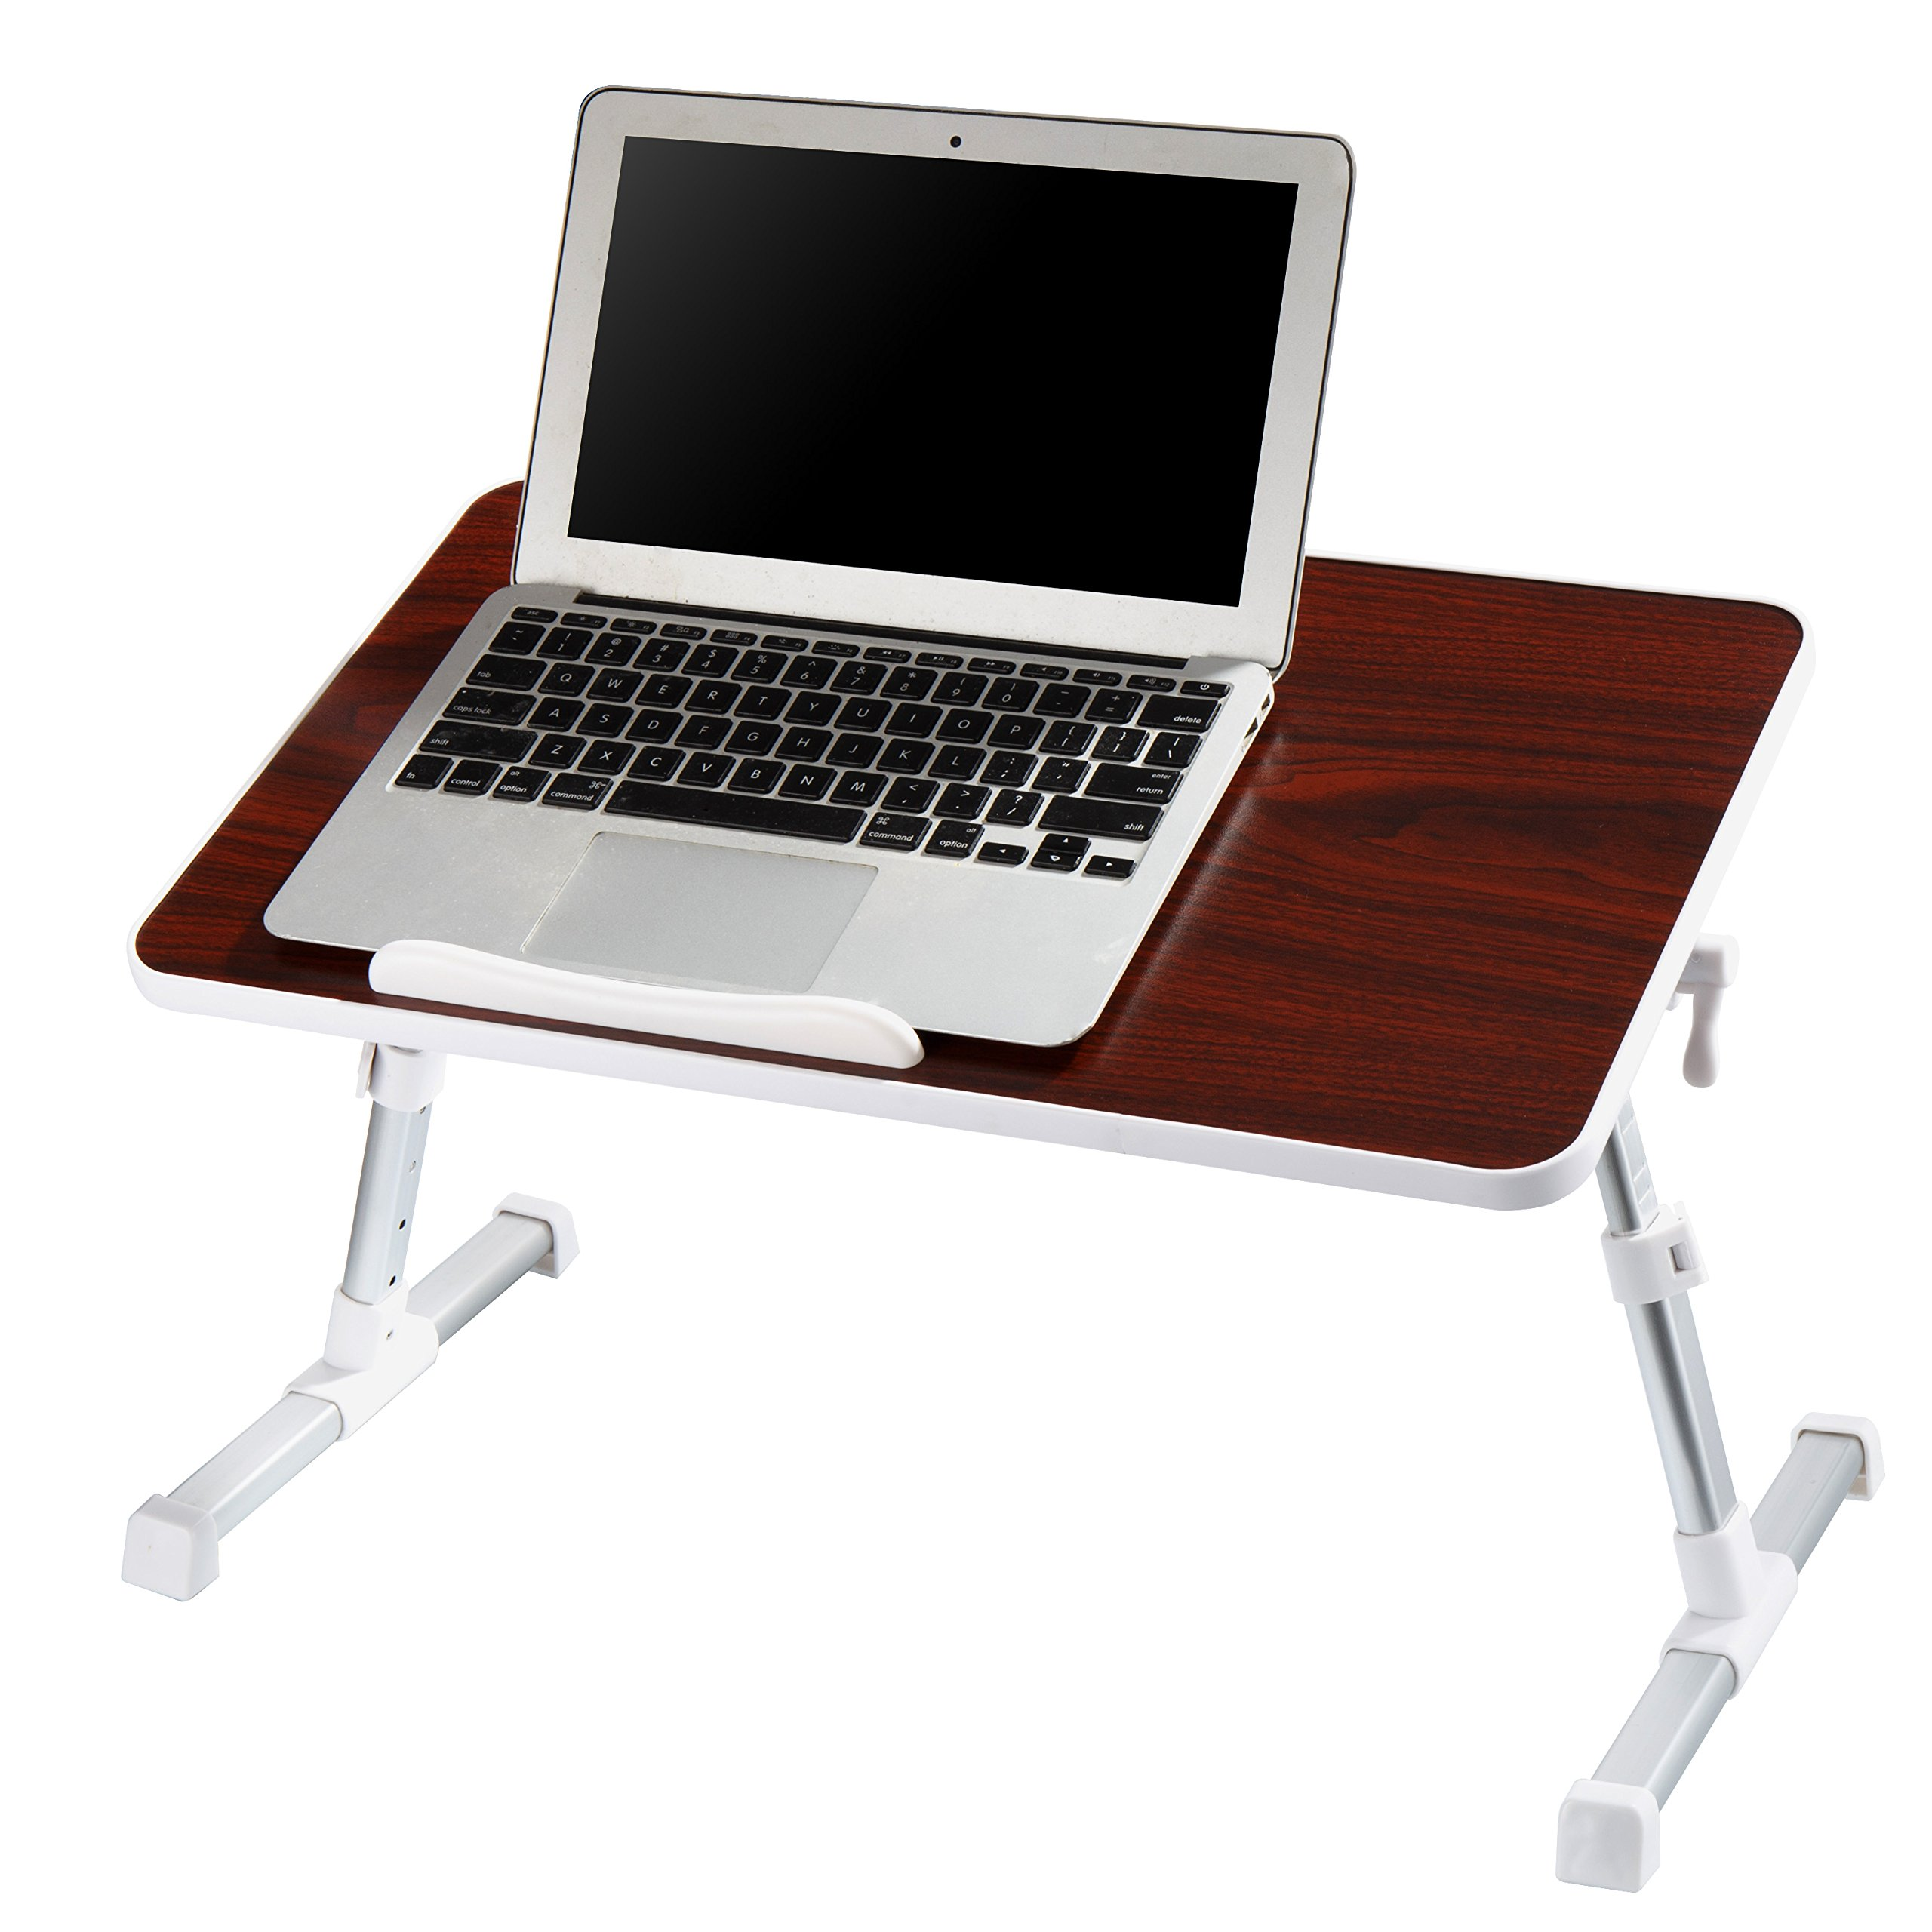 minimalist outstanding of adjustable ideas laptop on portable designs standing desk wheels